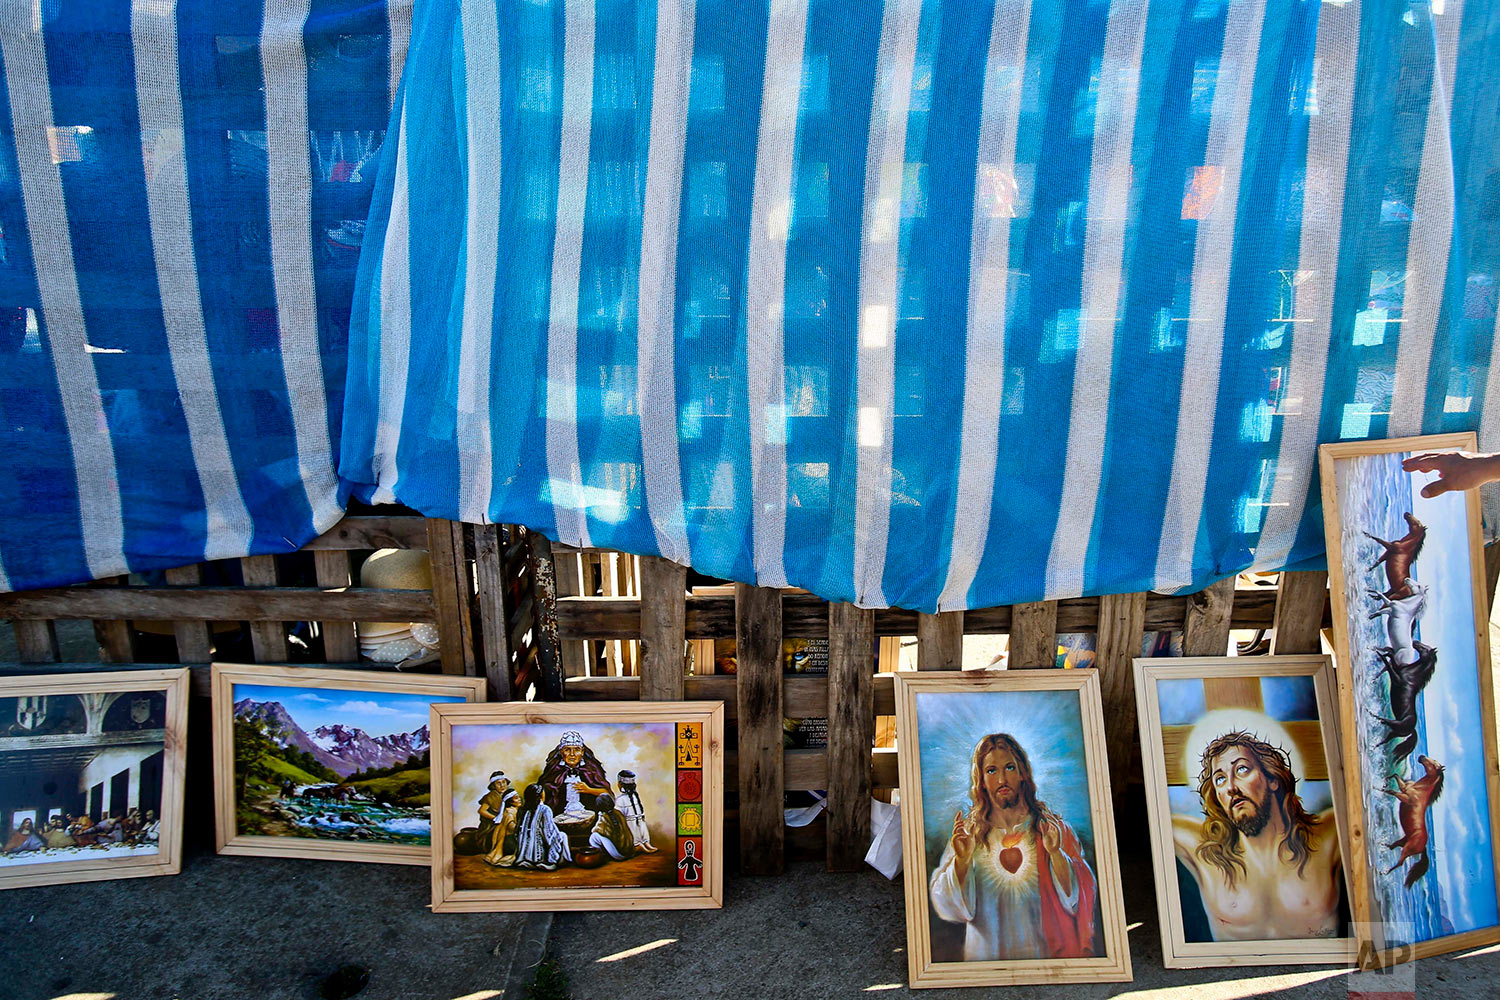 This Jan. 7, 2018 photo shows paintings with Mapuche, Catholic and scenic motifs displayed for sale at a cultural fair in the Puerto Dominguez community in Temuco, Chile. (AP Photo/Esteban Felix) | See these photos on AP Images